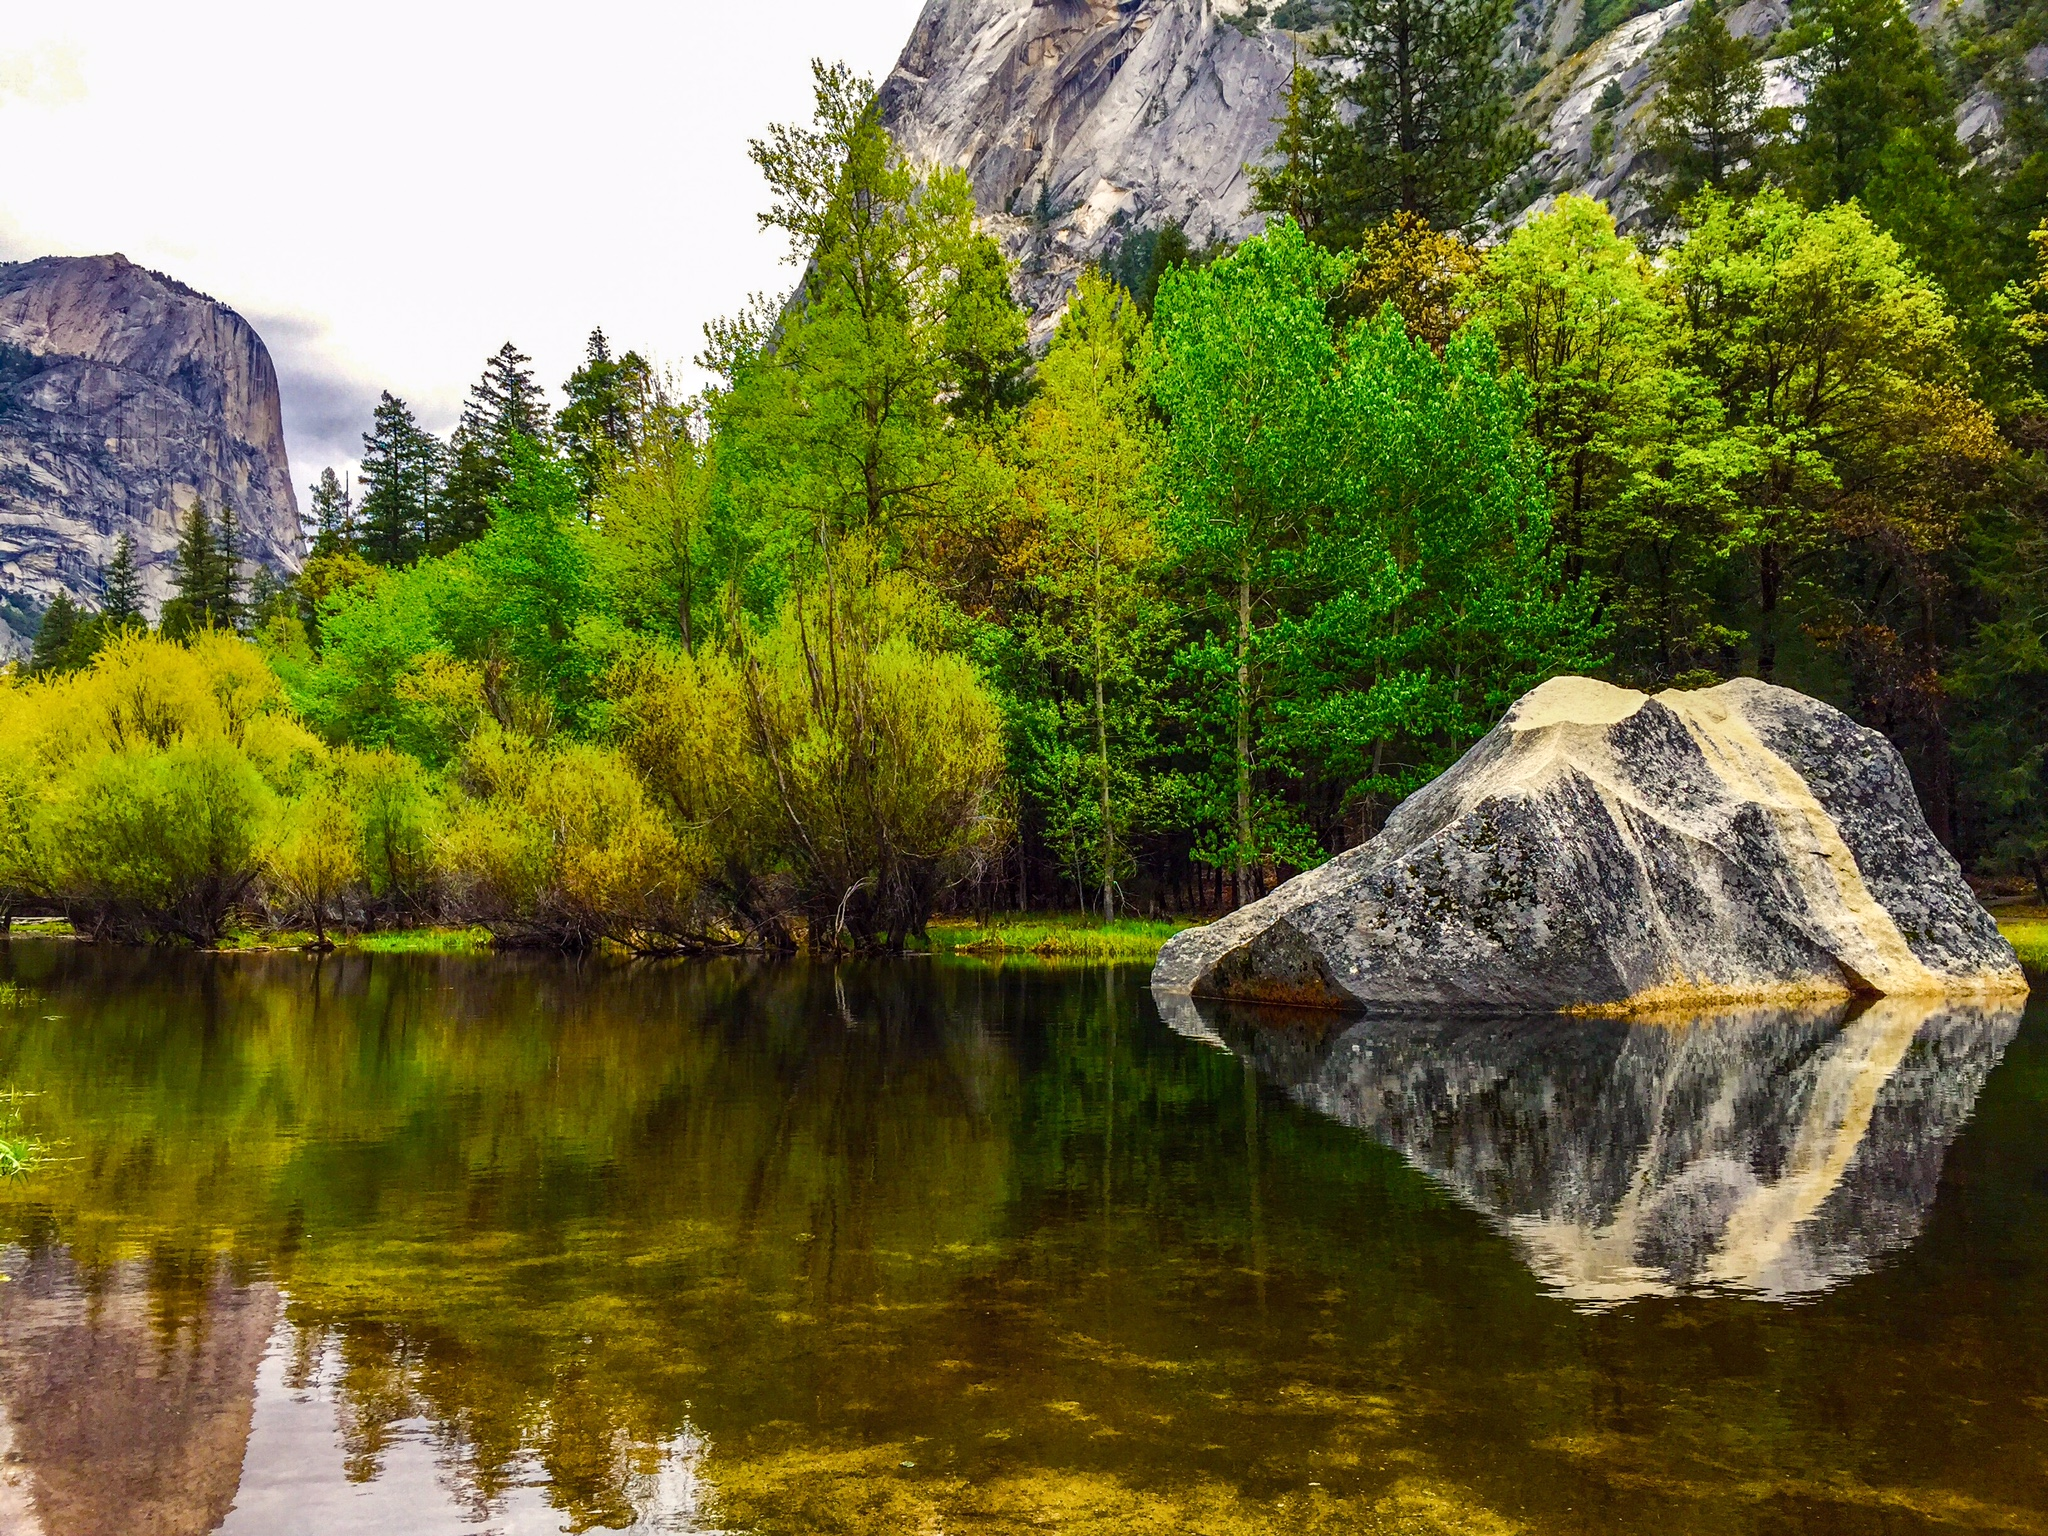 Mirror lake in the Valley